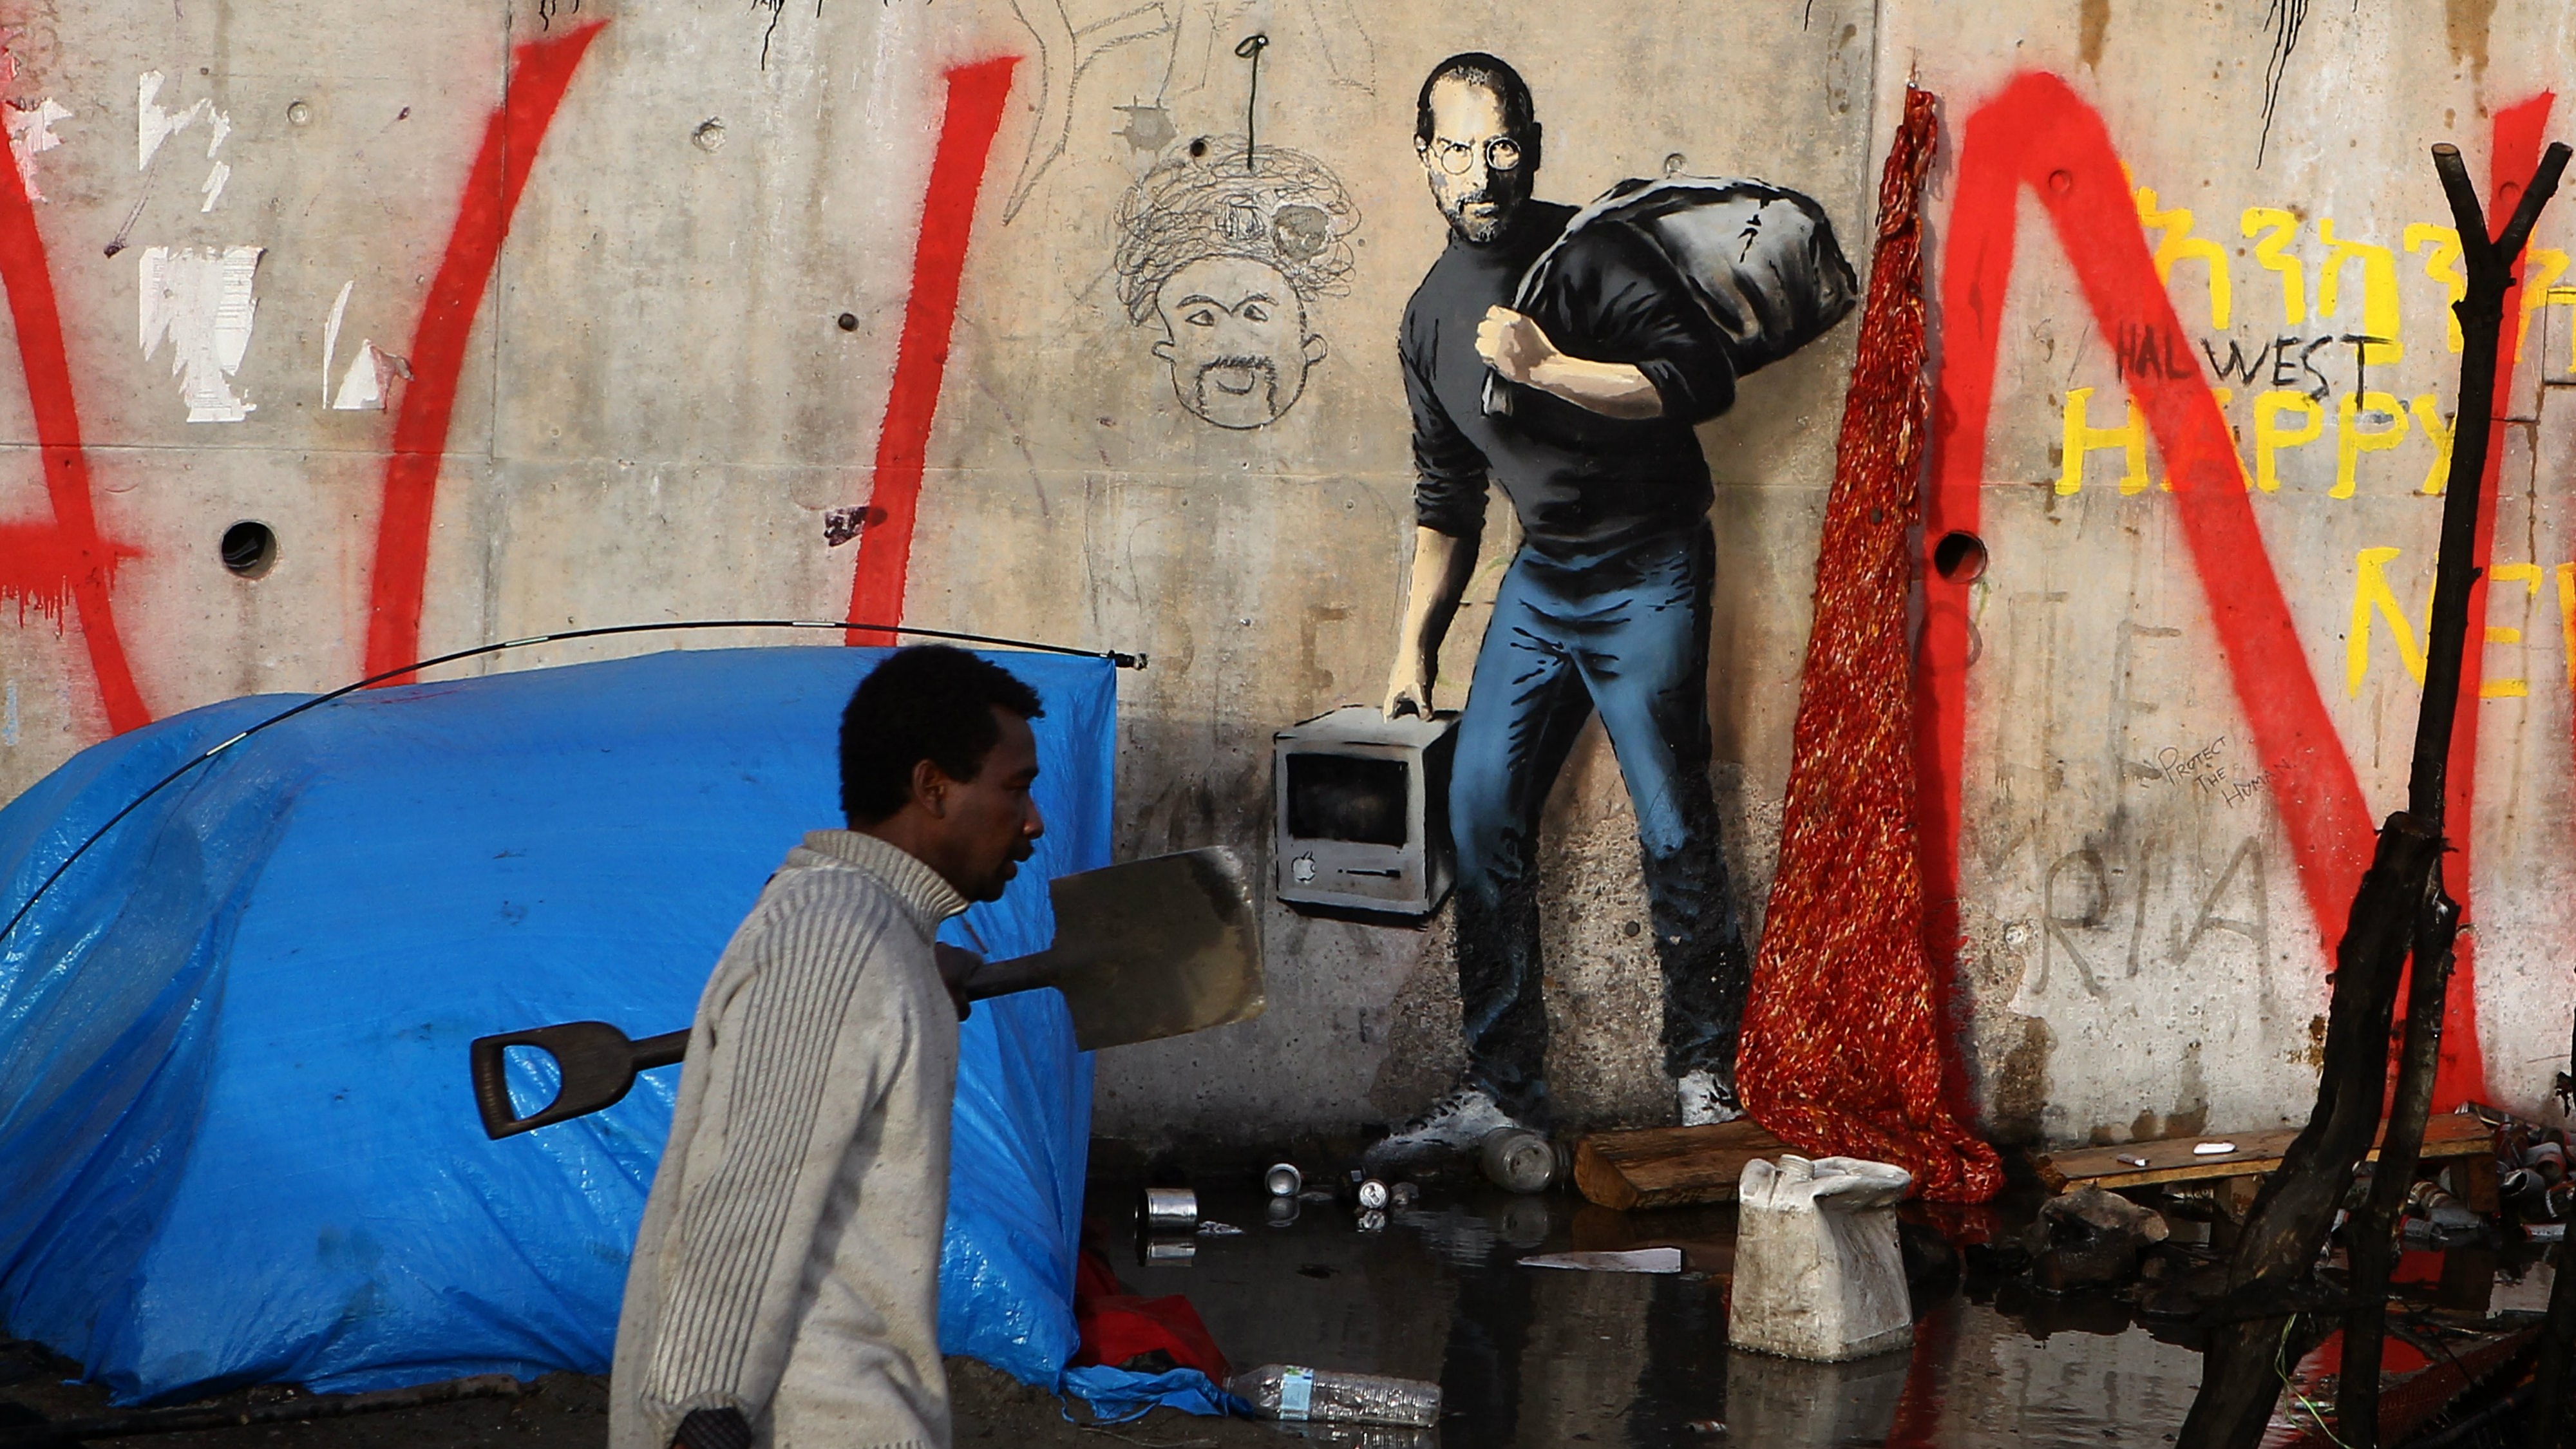 A migrant walks past a painting by English graffiti artist Banksy, at the entrance of the Calais refugee camp in France, in Calais, northern France, Monday, Dec. 21, 2015. The elusive graffiti artist has depicted the late Apple guru Steve Jobs — whose biological father was from Syria — carrying a black garbage bag and an early model of the Macintosh computer.